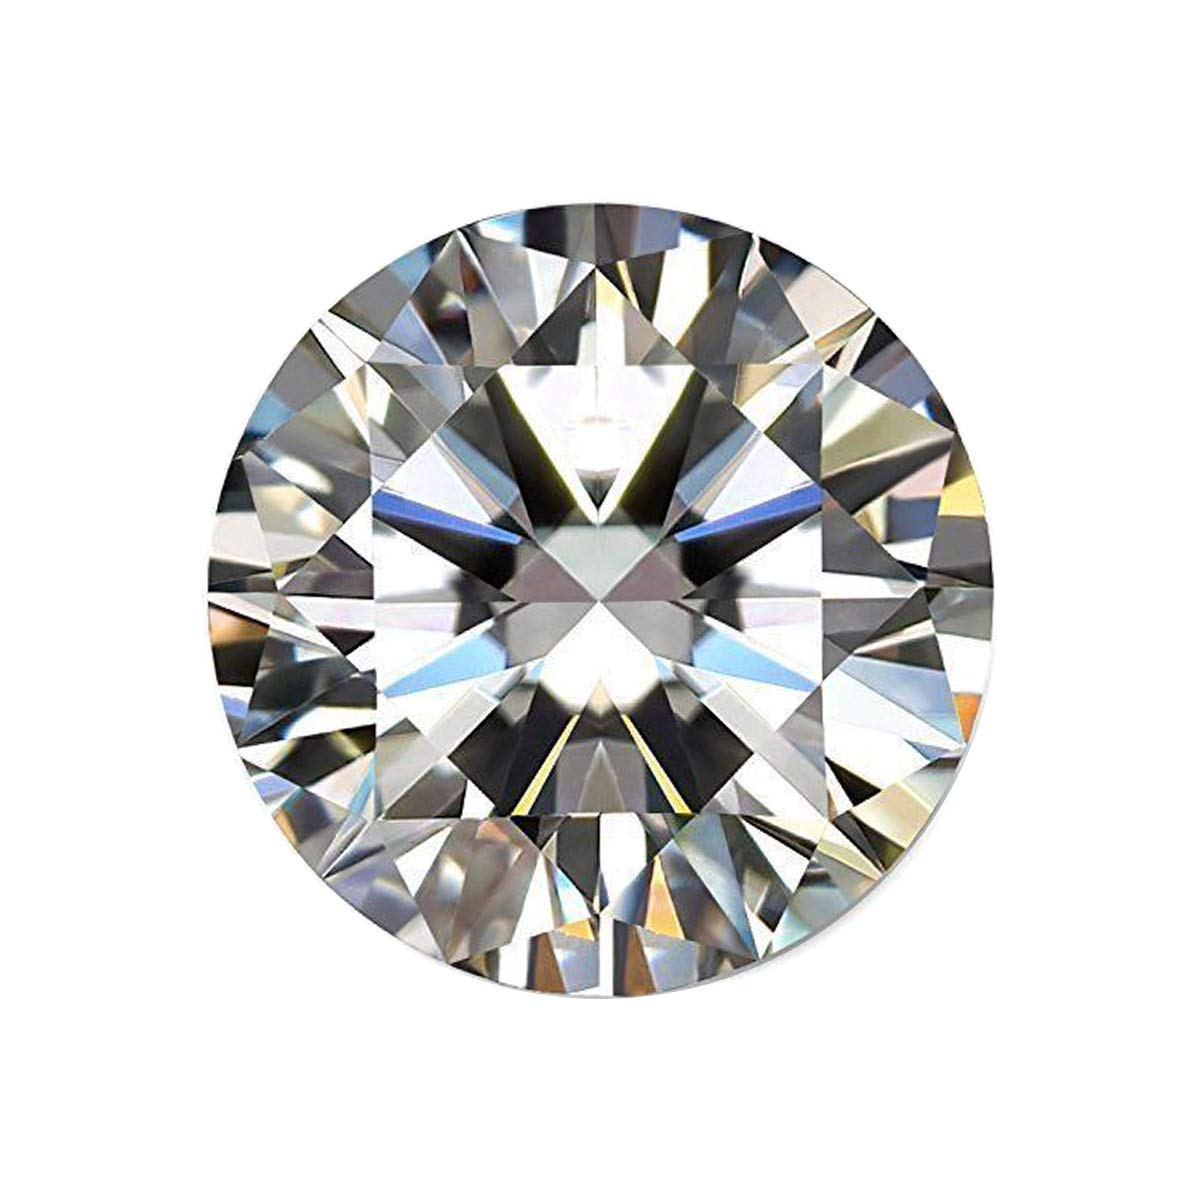 Gemhub Moissanite Diamond Color DF Loose Stone Excellent Cut Moissanite VVS1 Clarity 0.75 Ct White Moissanite for Jewelry Making